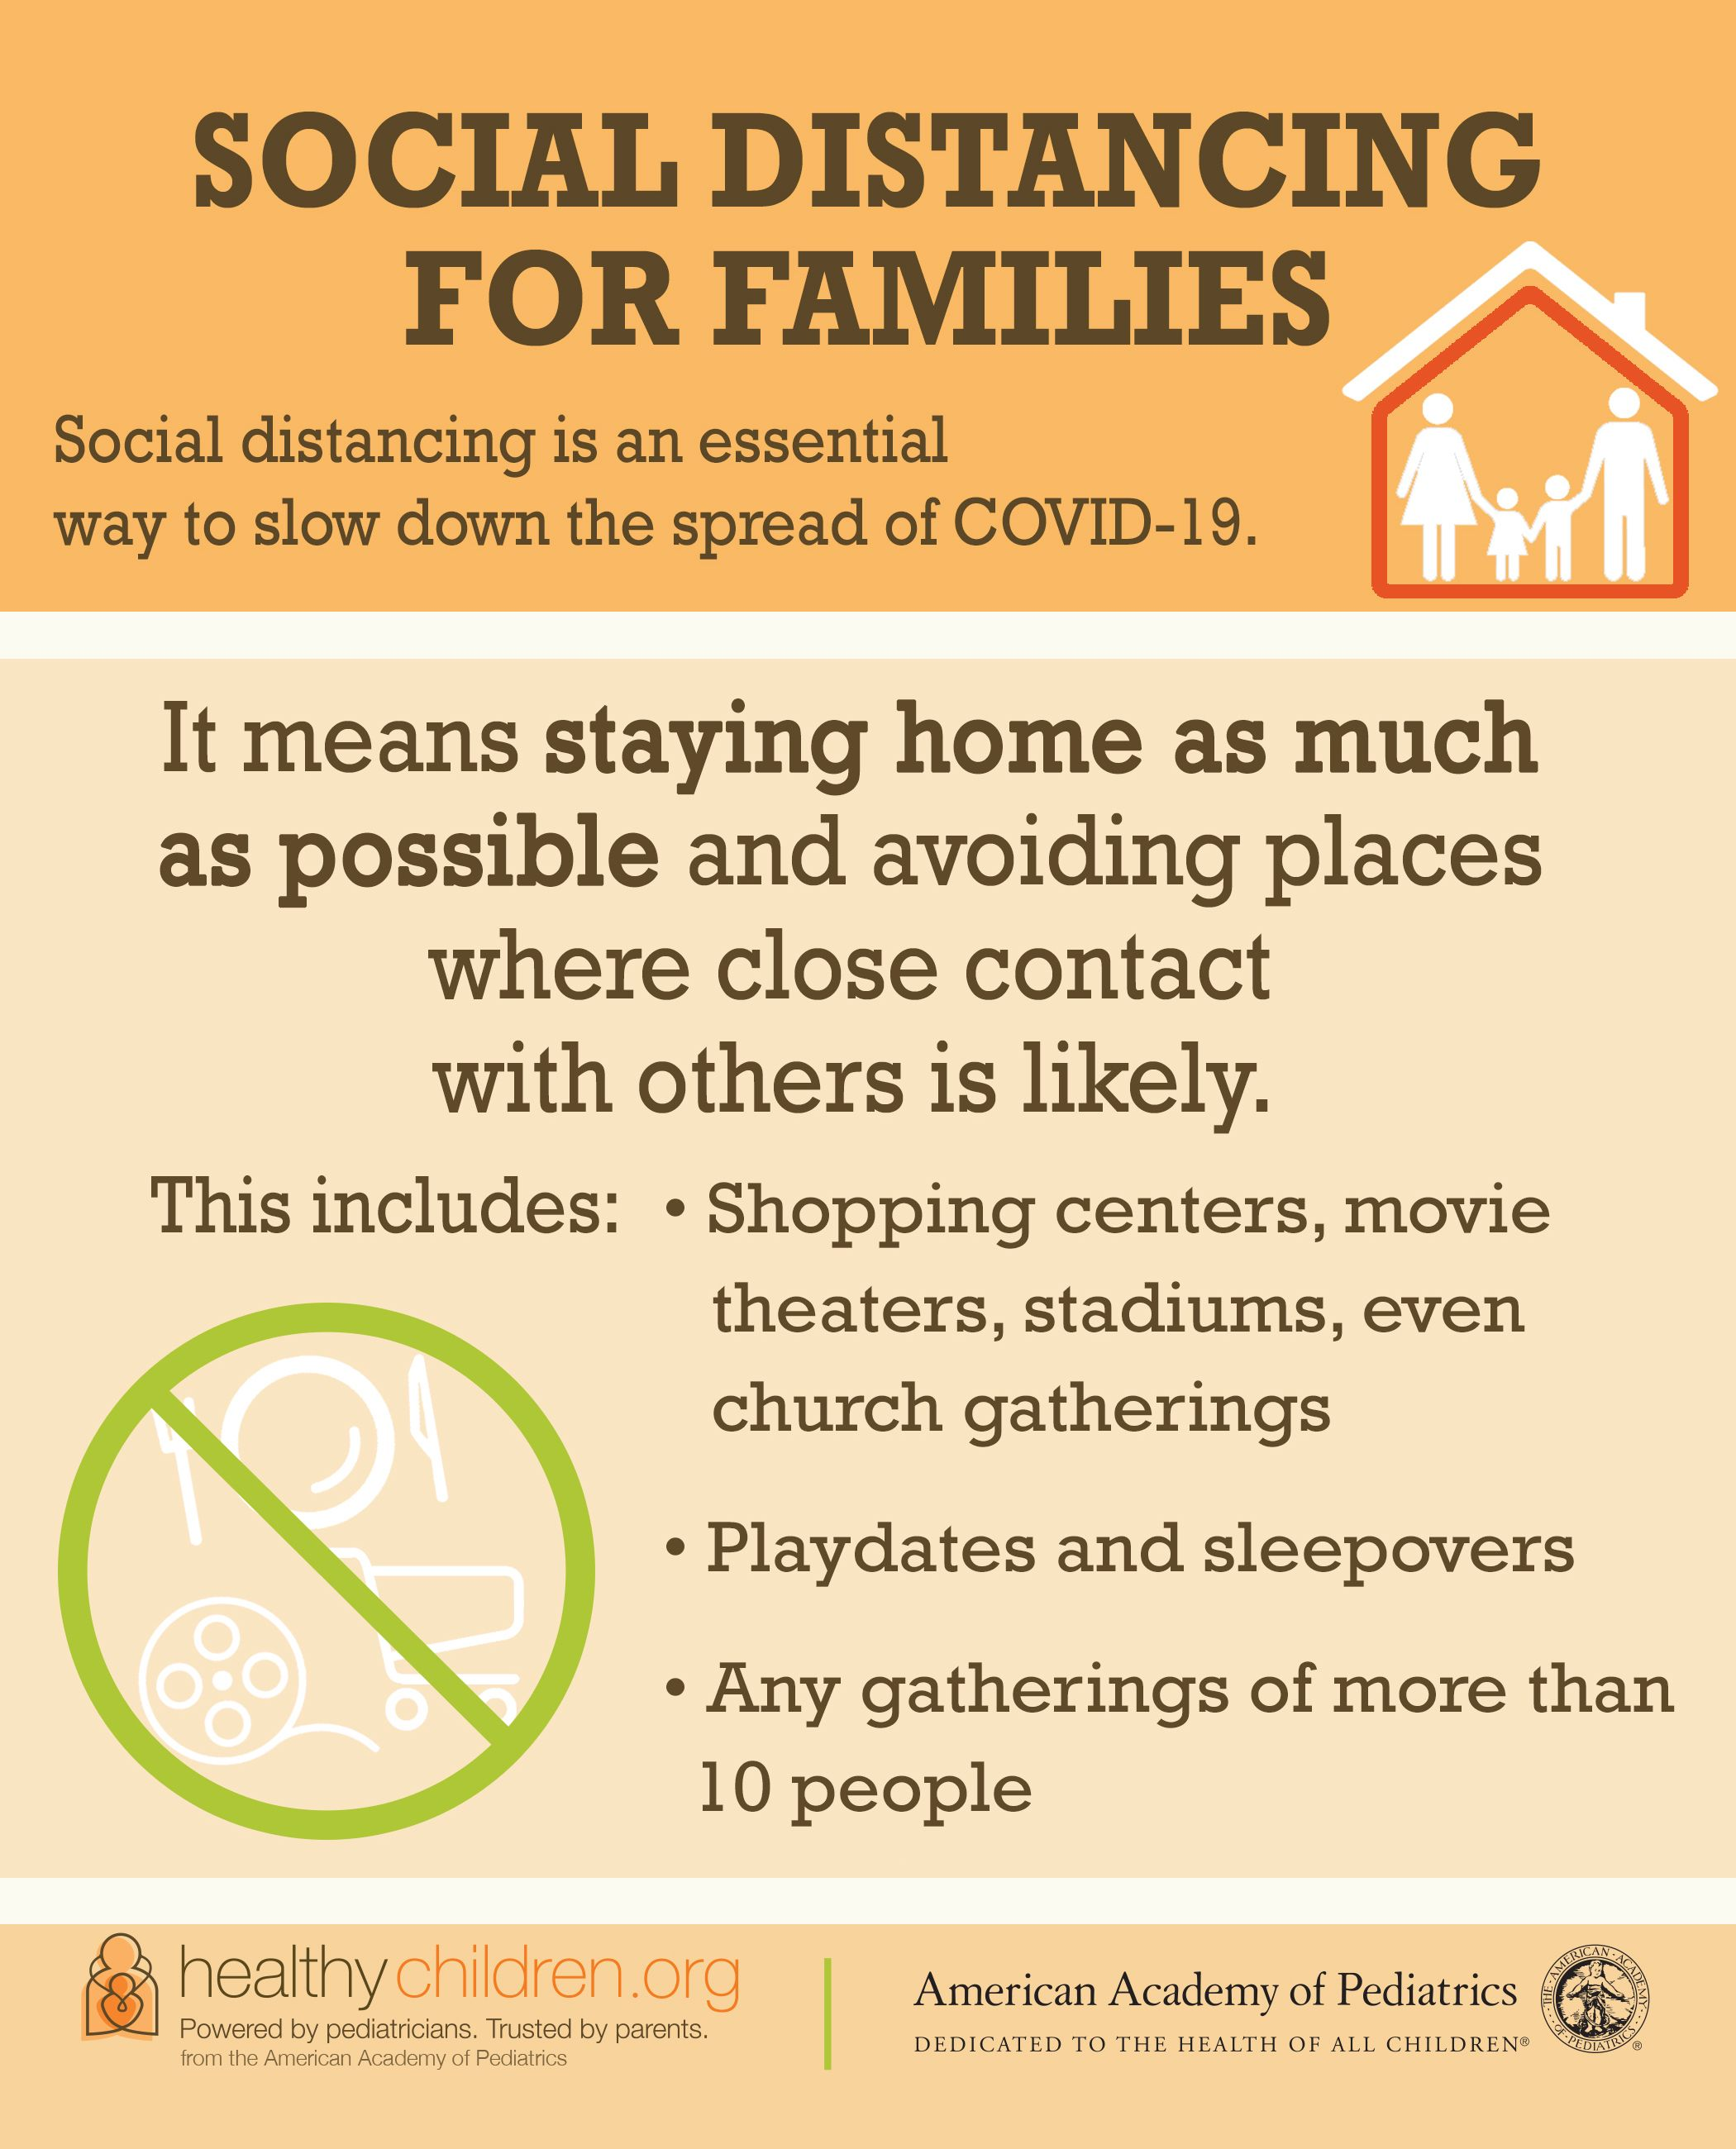 Because COVID19 spreads from person to person, reducing